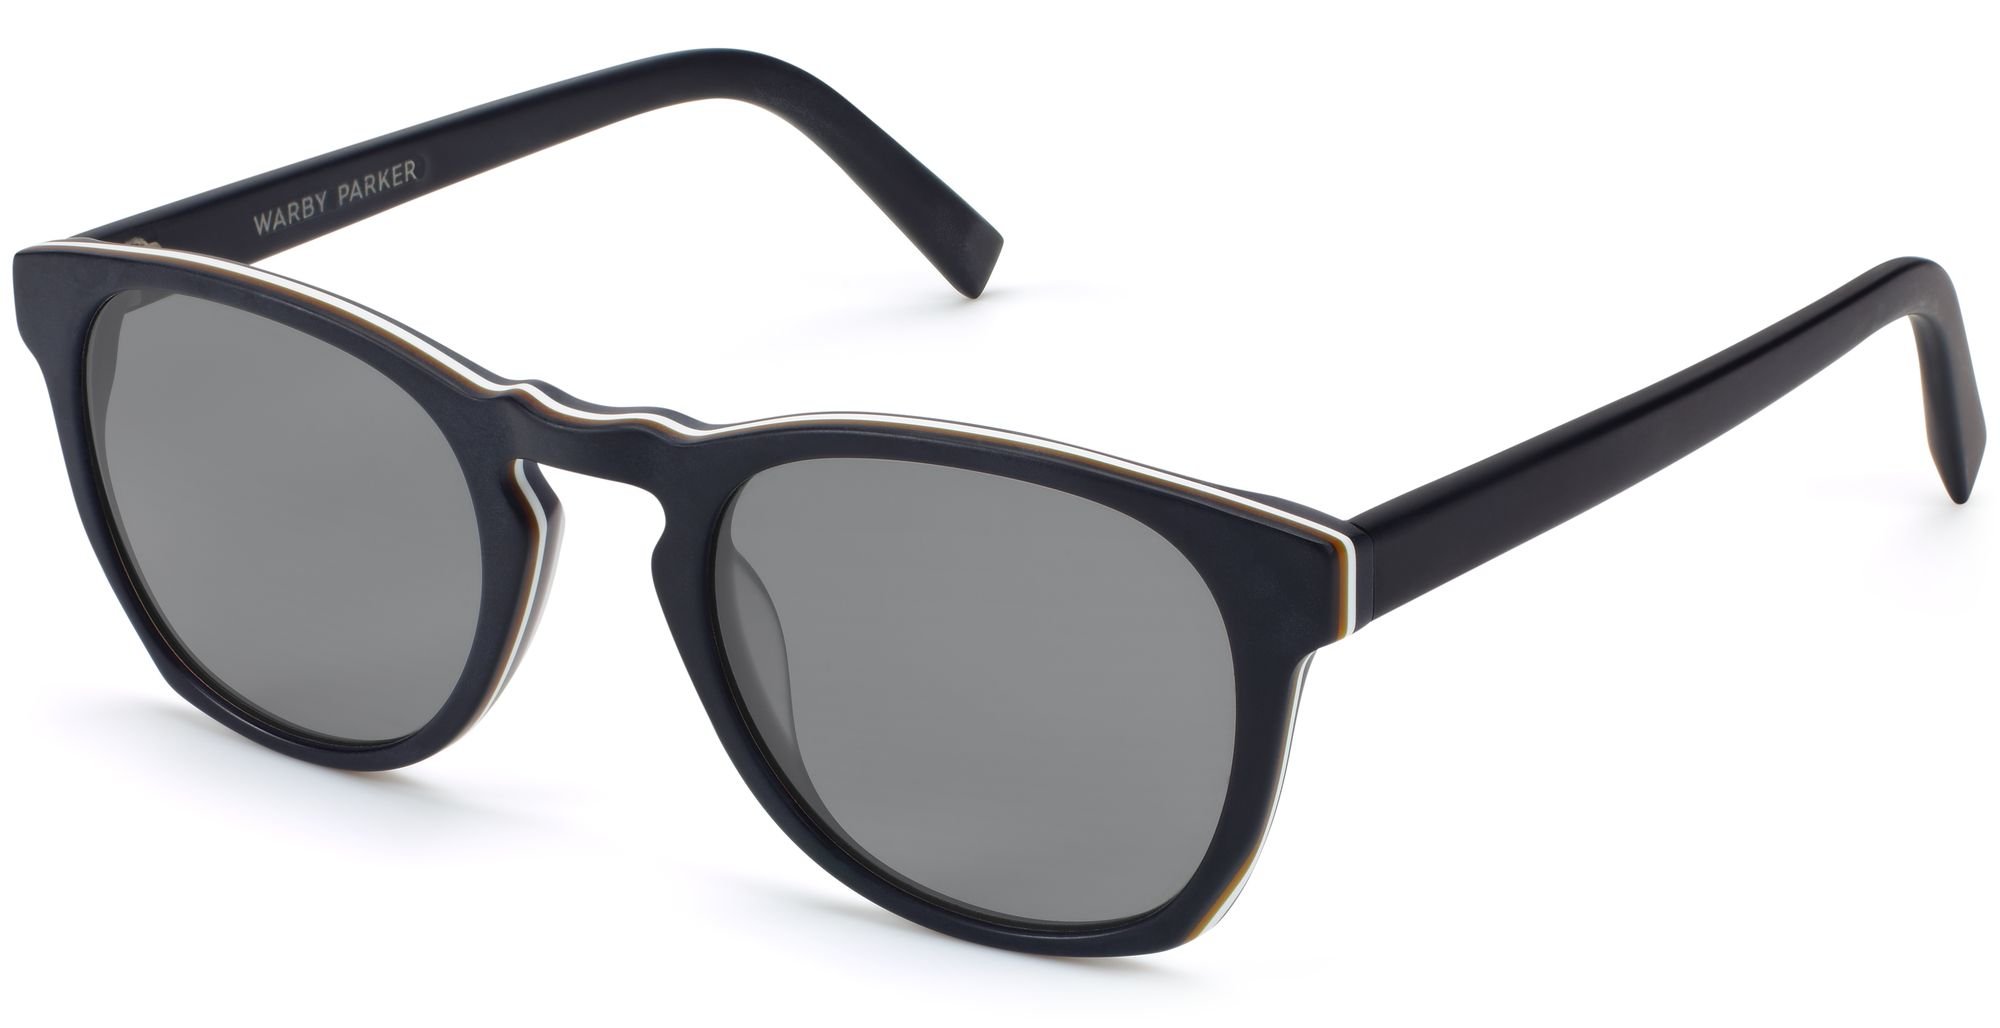 Angle View Image of Topper Sunglasses Collection, by Warby Parker Brand, in Black Matte Eclipse Color